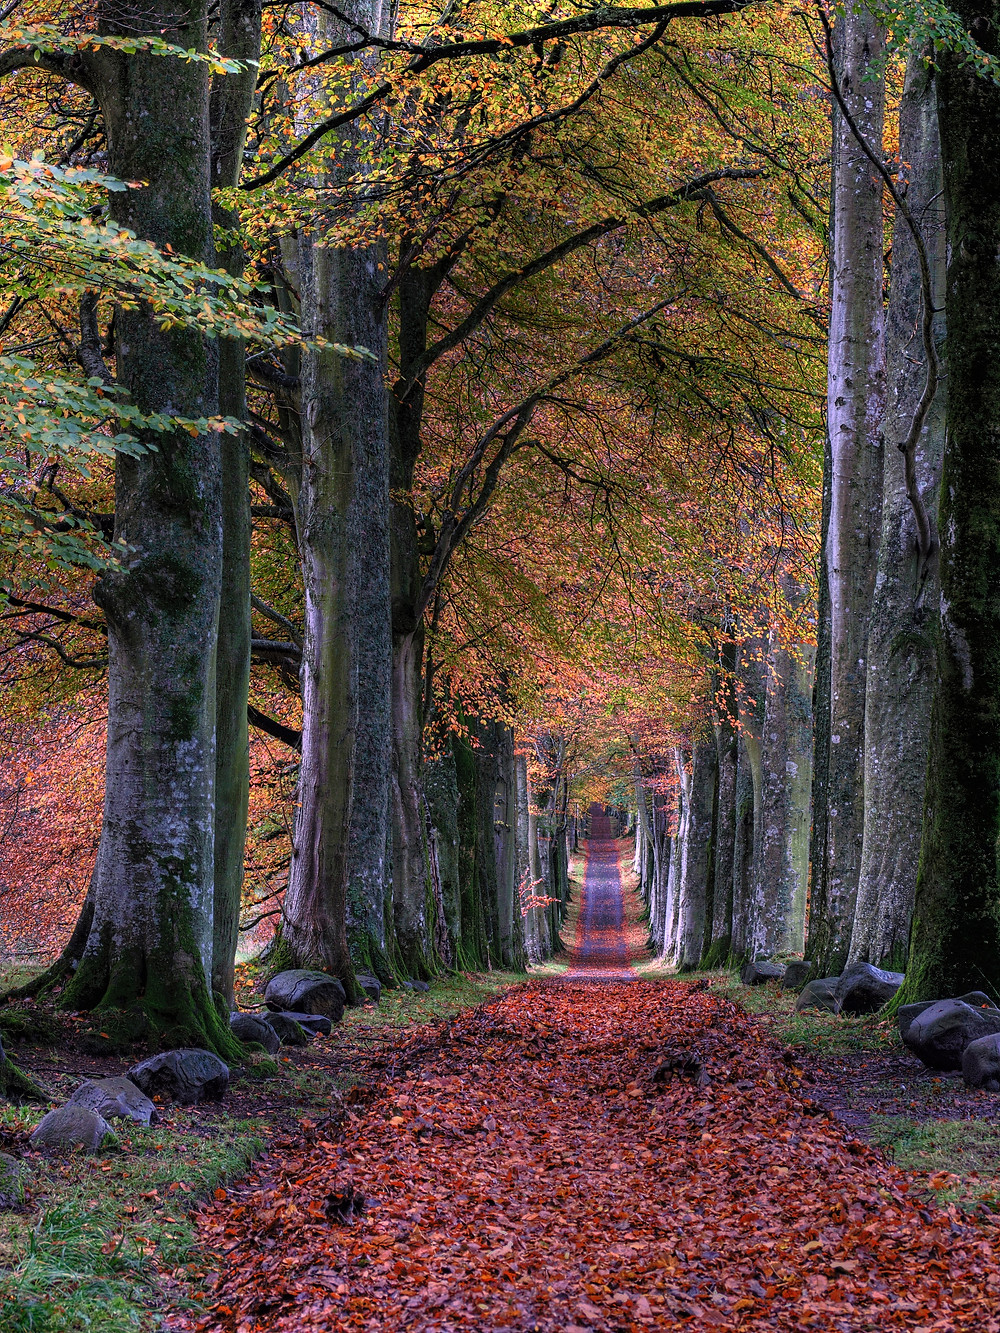 This is an image of a park path in the fall covered with leaves.